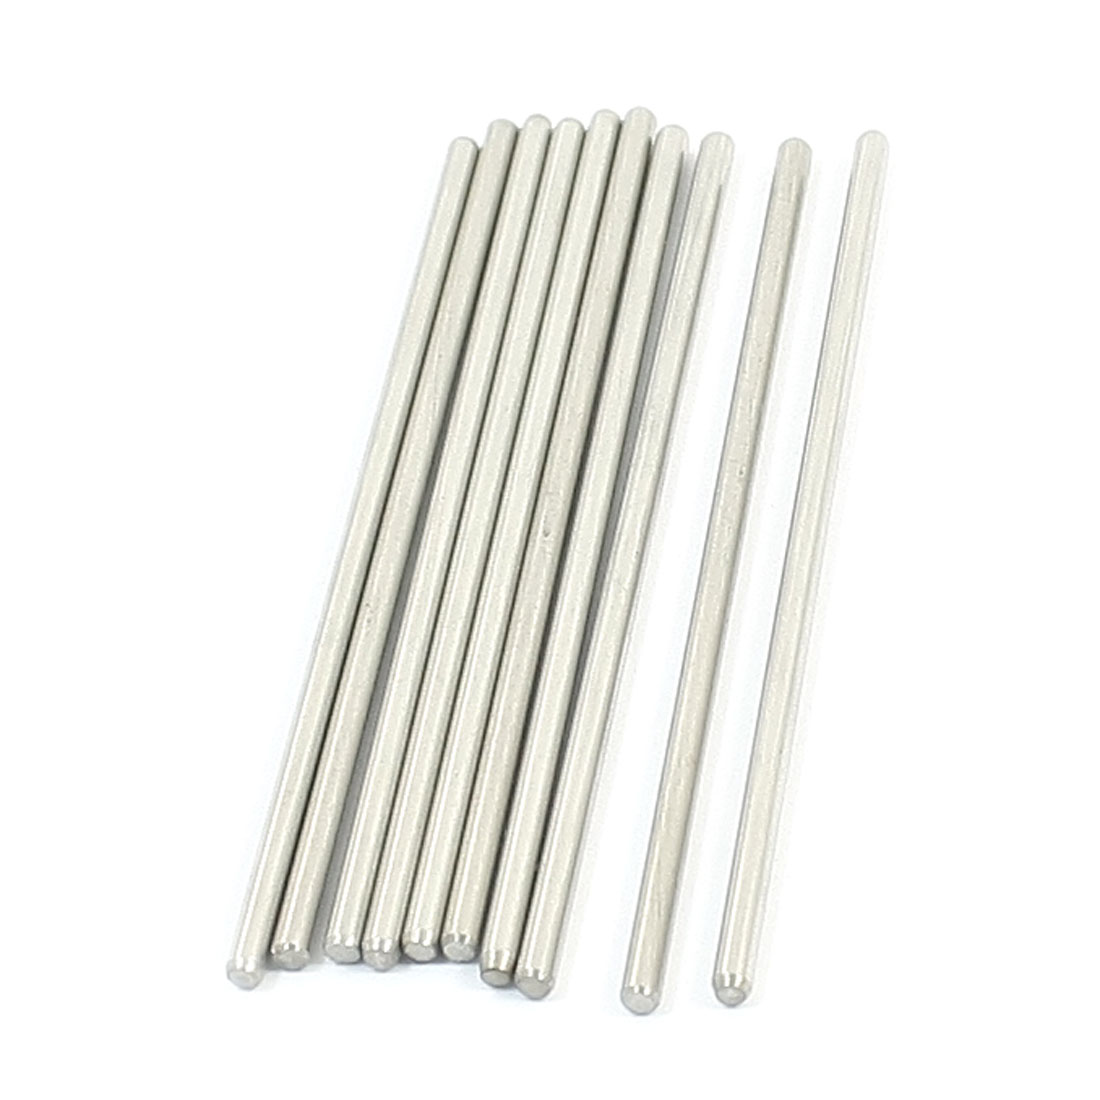 10PCS RC Model Spare Parts Stainless Steel Round Bar Shaft 60mmx2mm